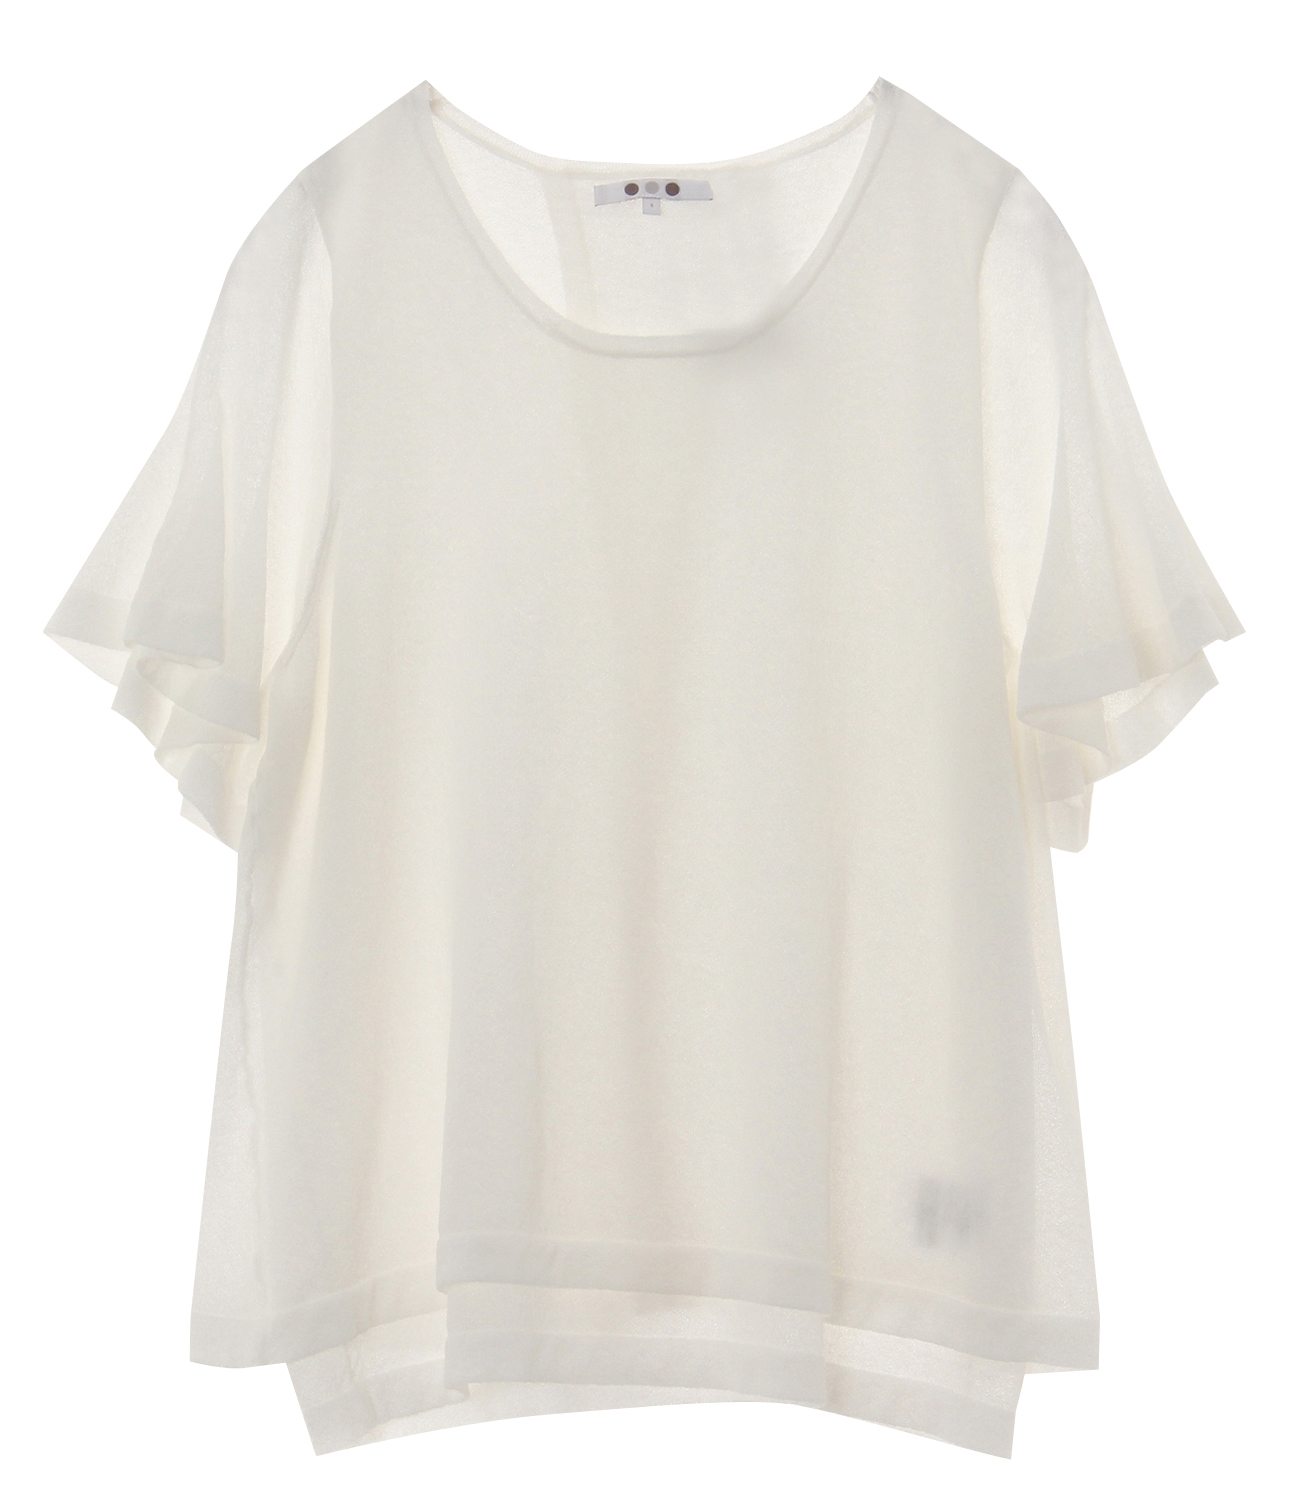 crepe sweater s/s doubled top 詳細画像 white 1